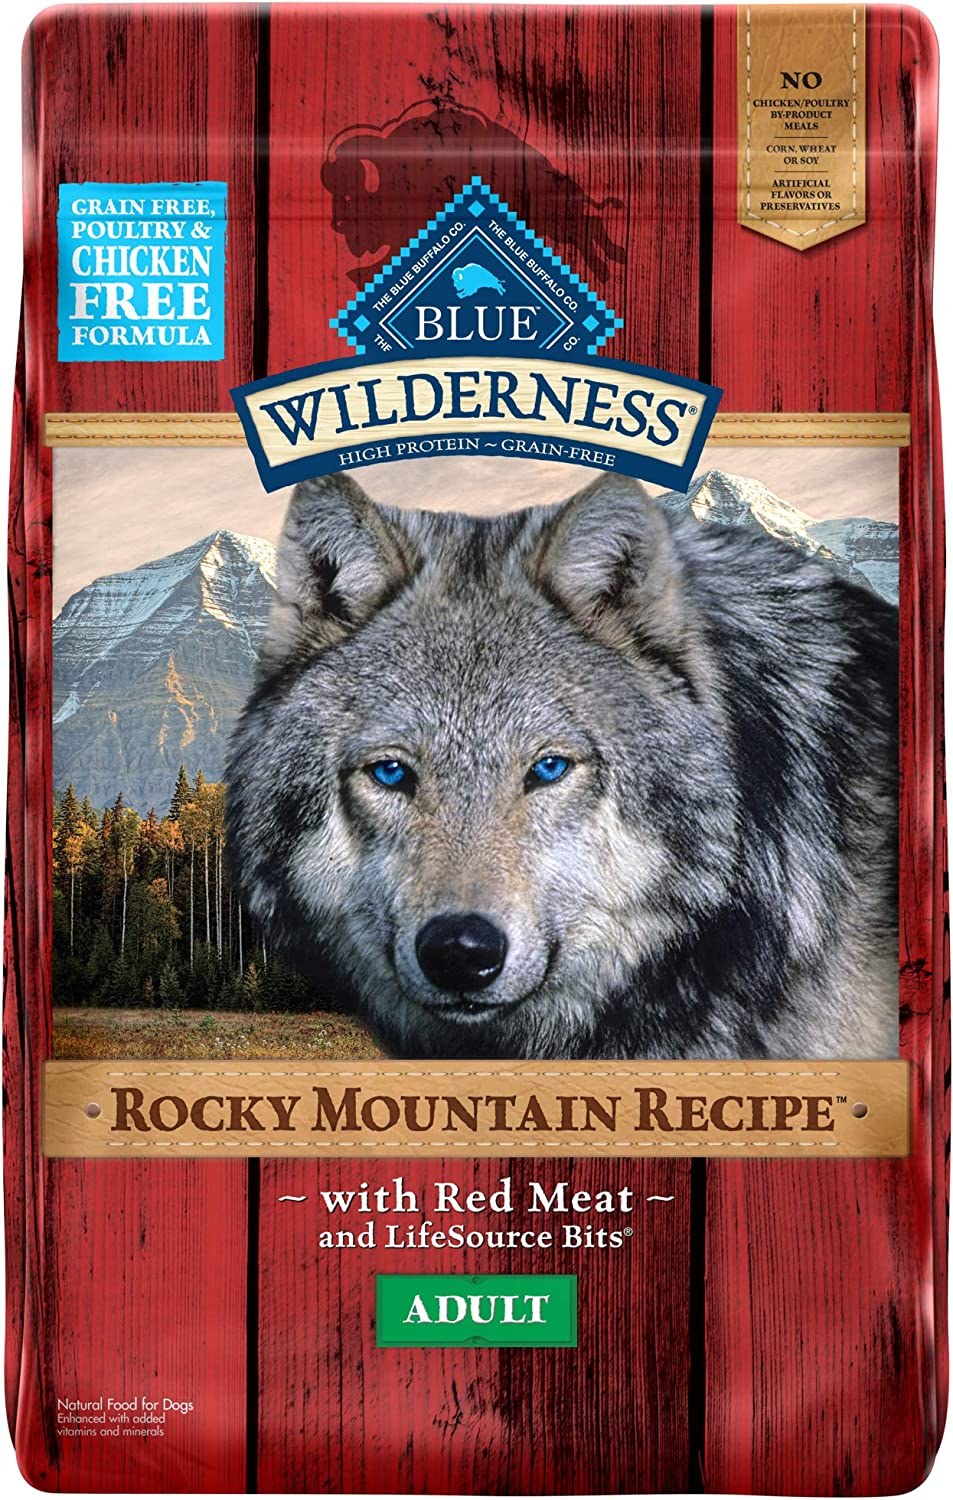 6. Blue Buffalo Wilderness Rocky Mountain Recipe Grain-Free Dry Dog Food